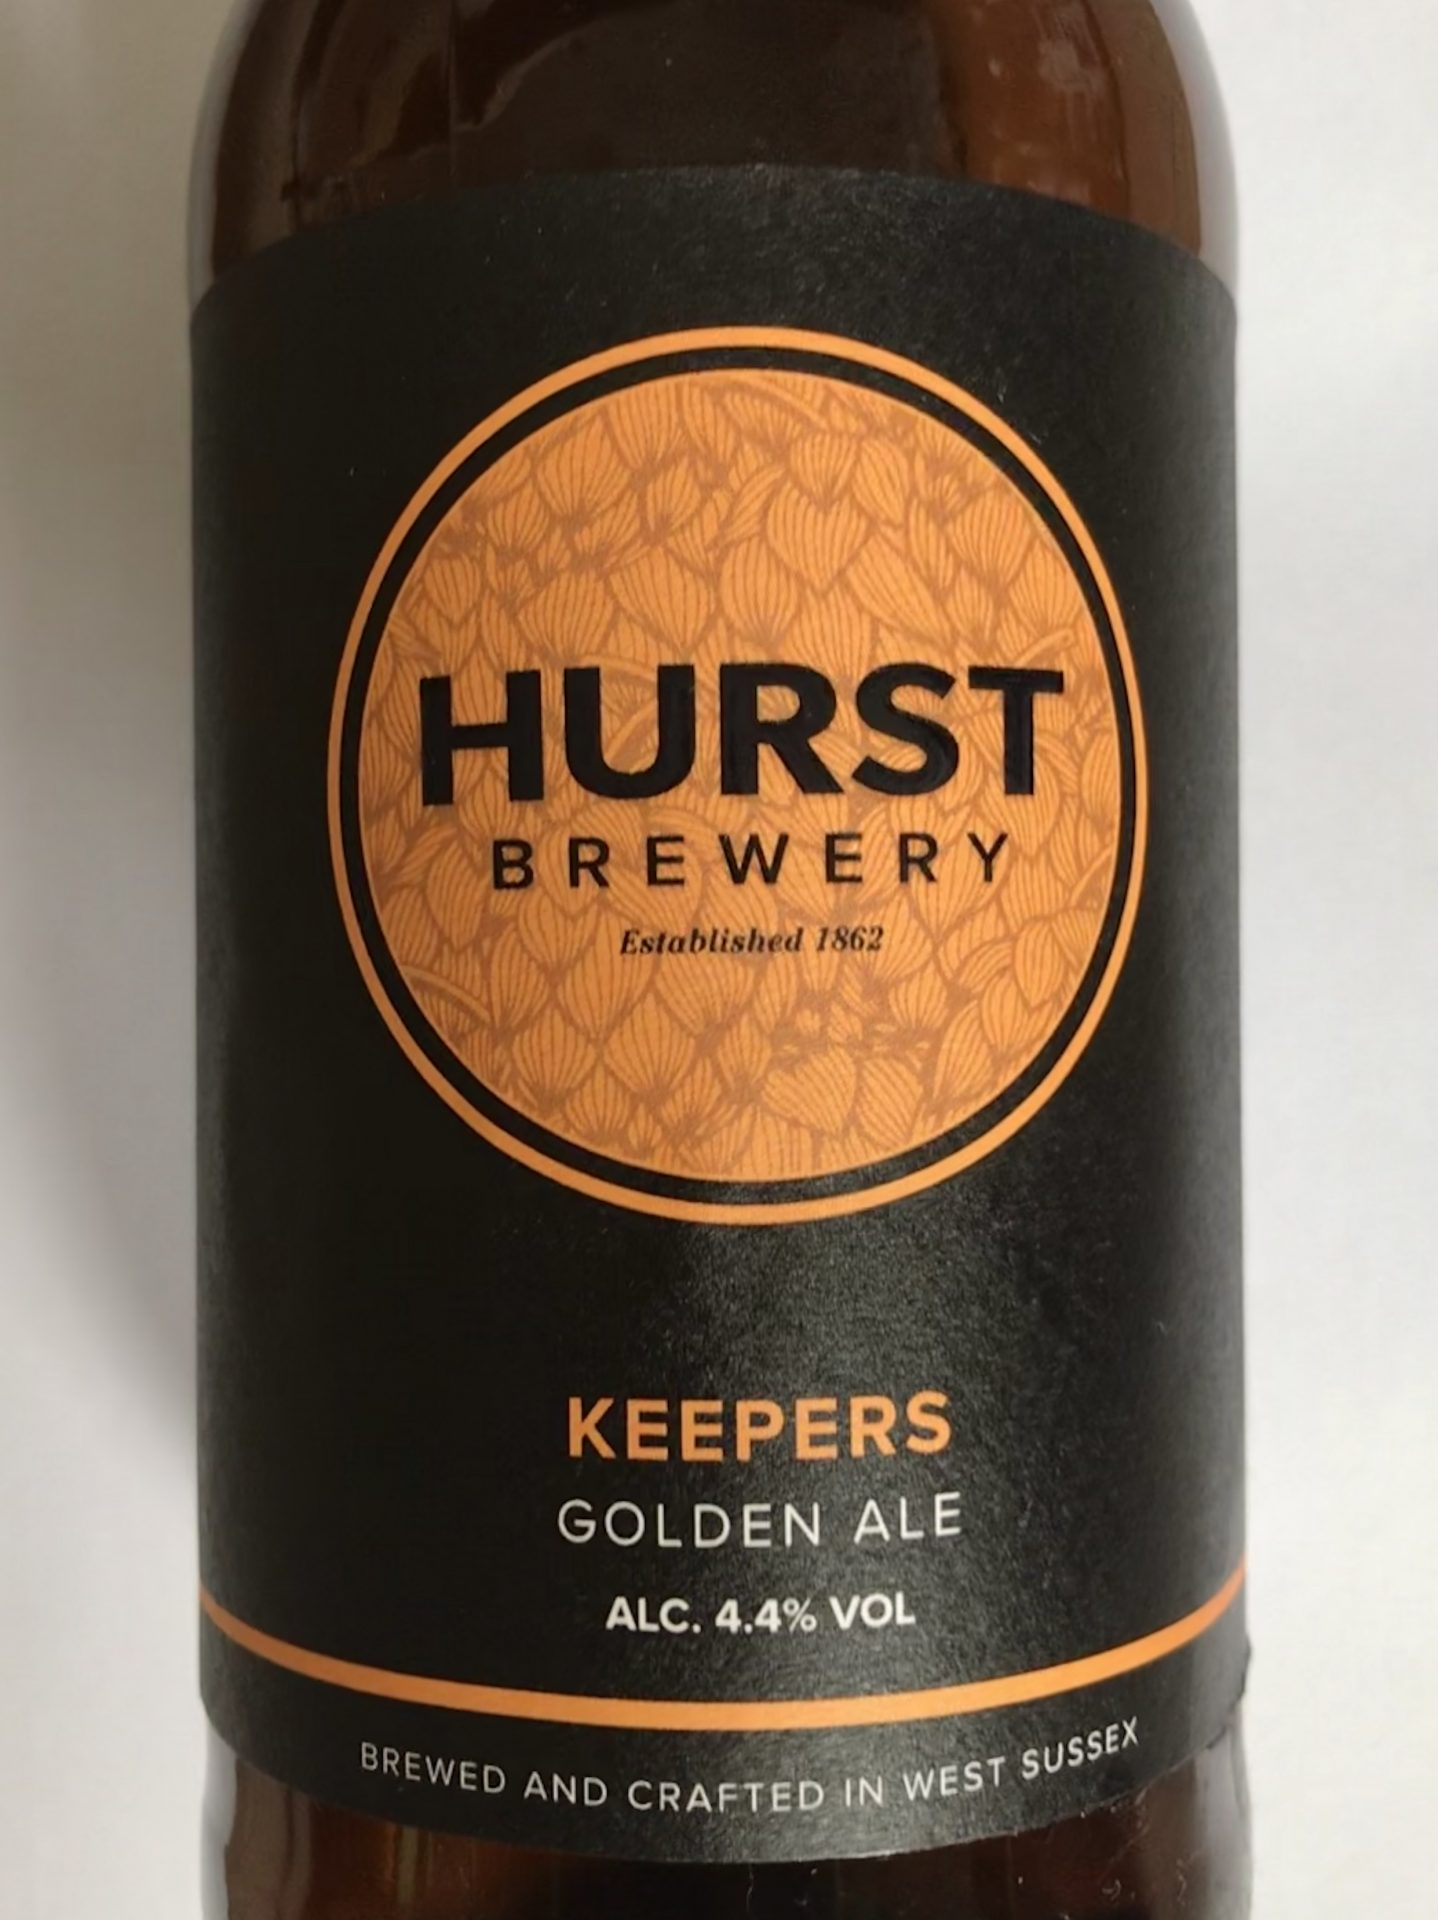 hurst brewery keepers golden ale bottle